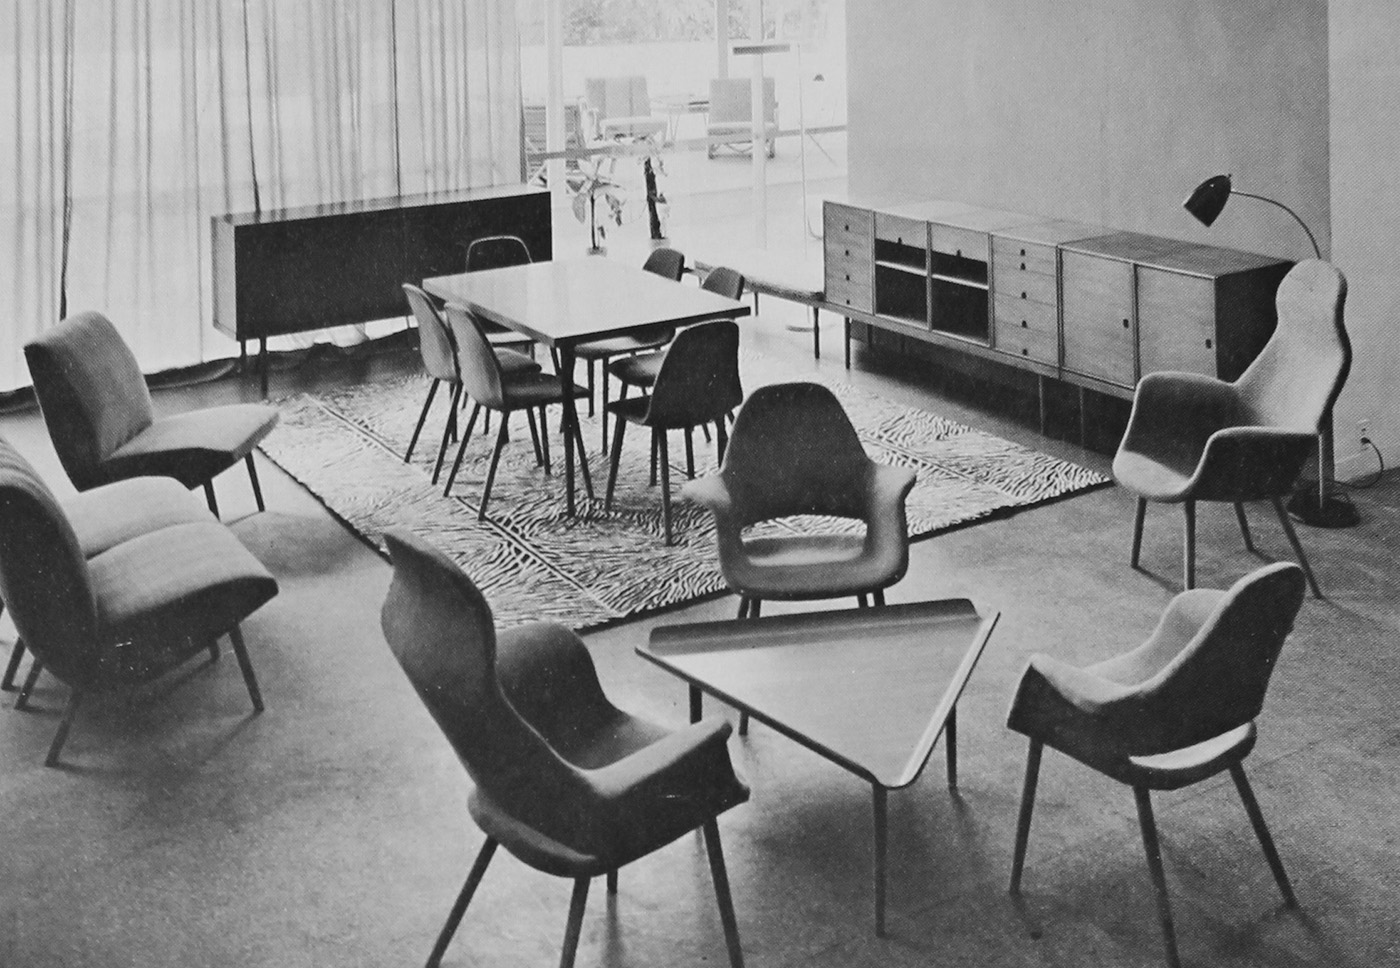 123 charles eames and eero saarinen chair from the museum of modern art organic design competition